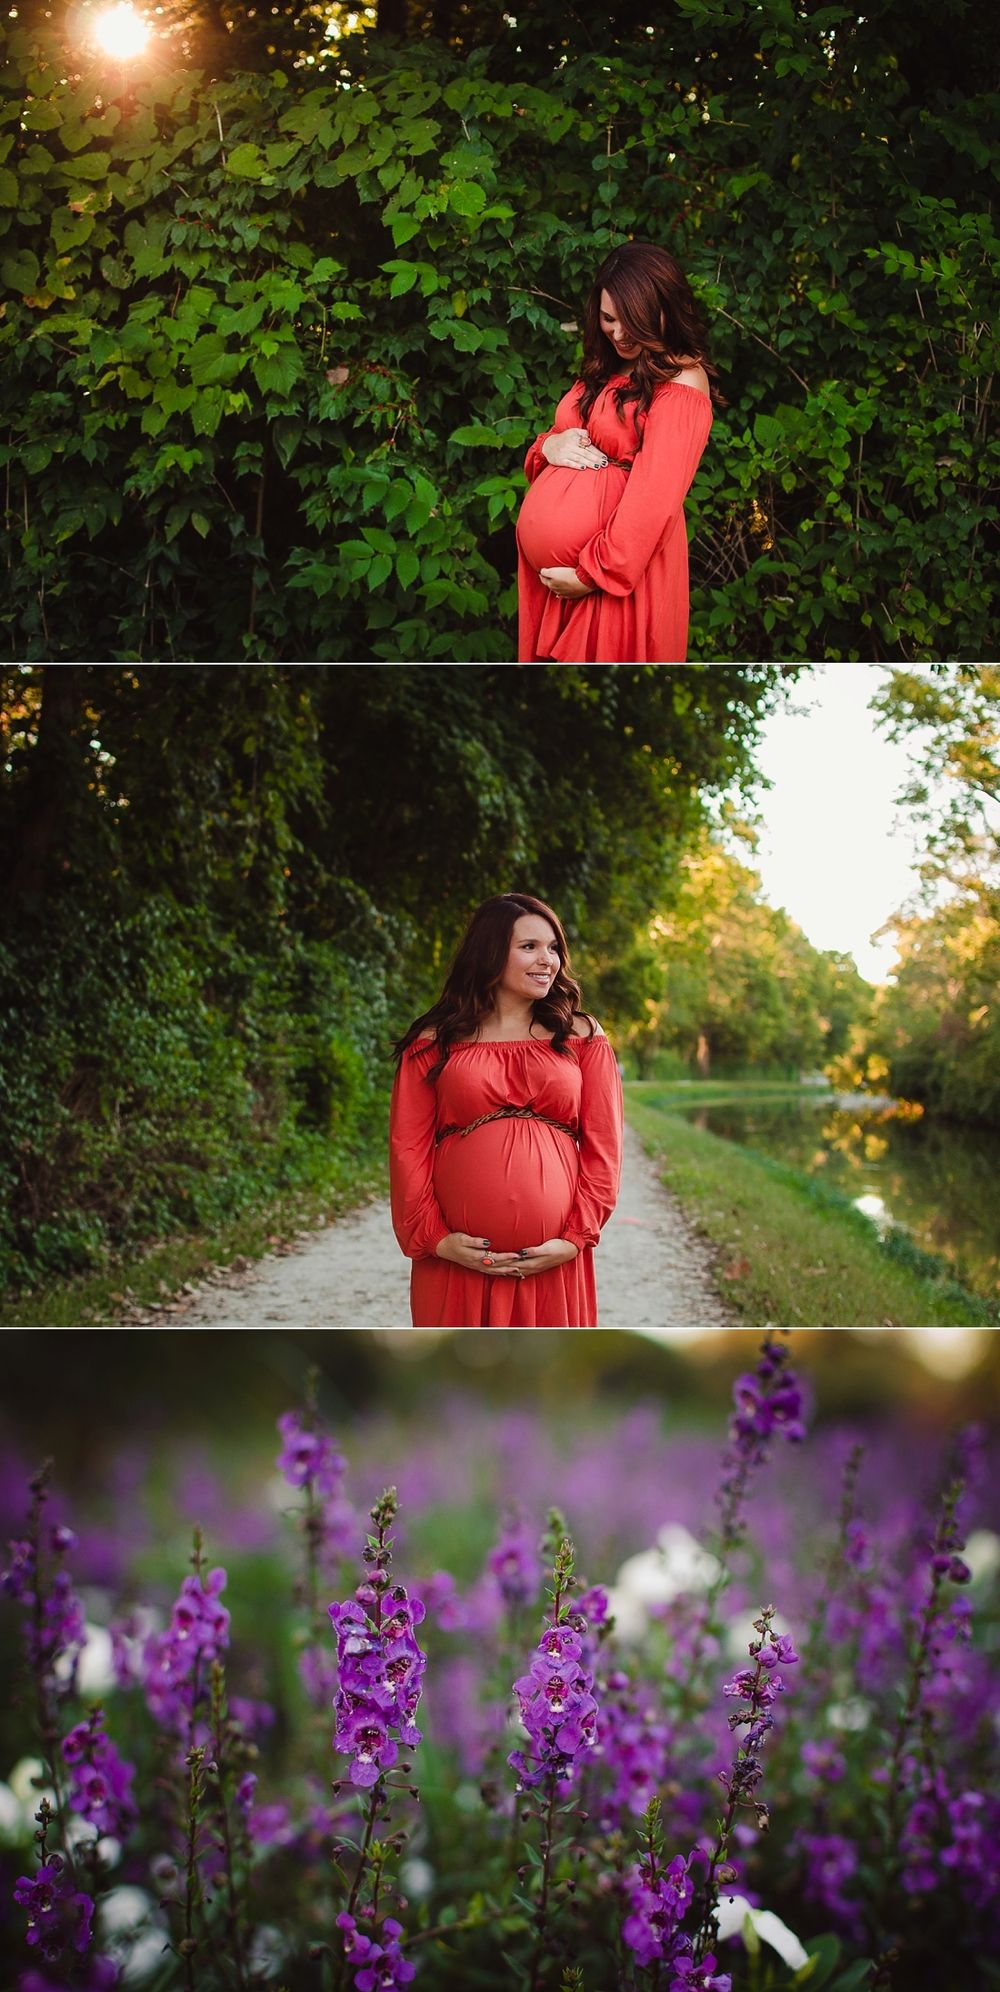 holcomb-gardens-maternity-session_0006.jpg